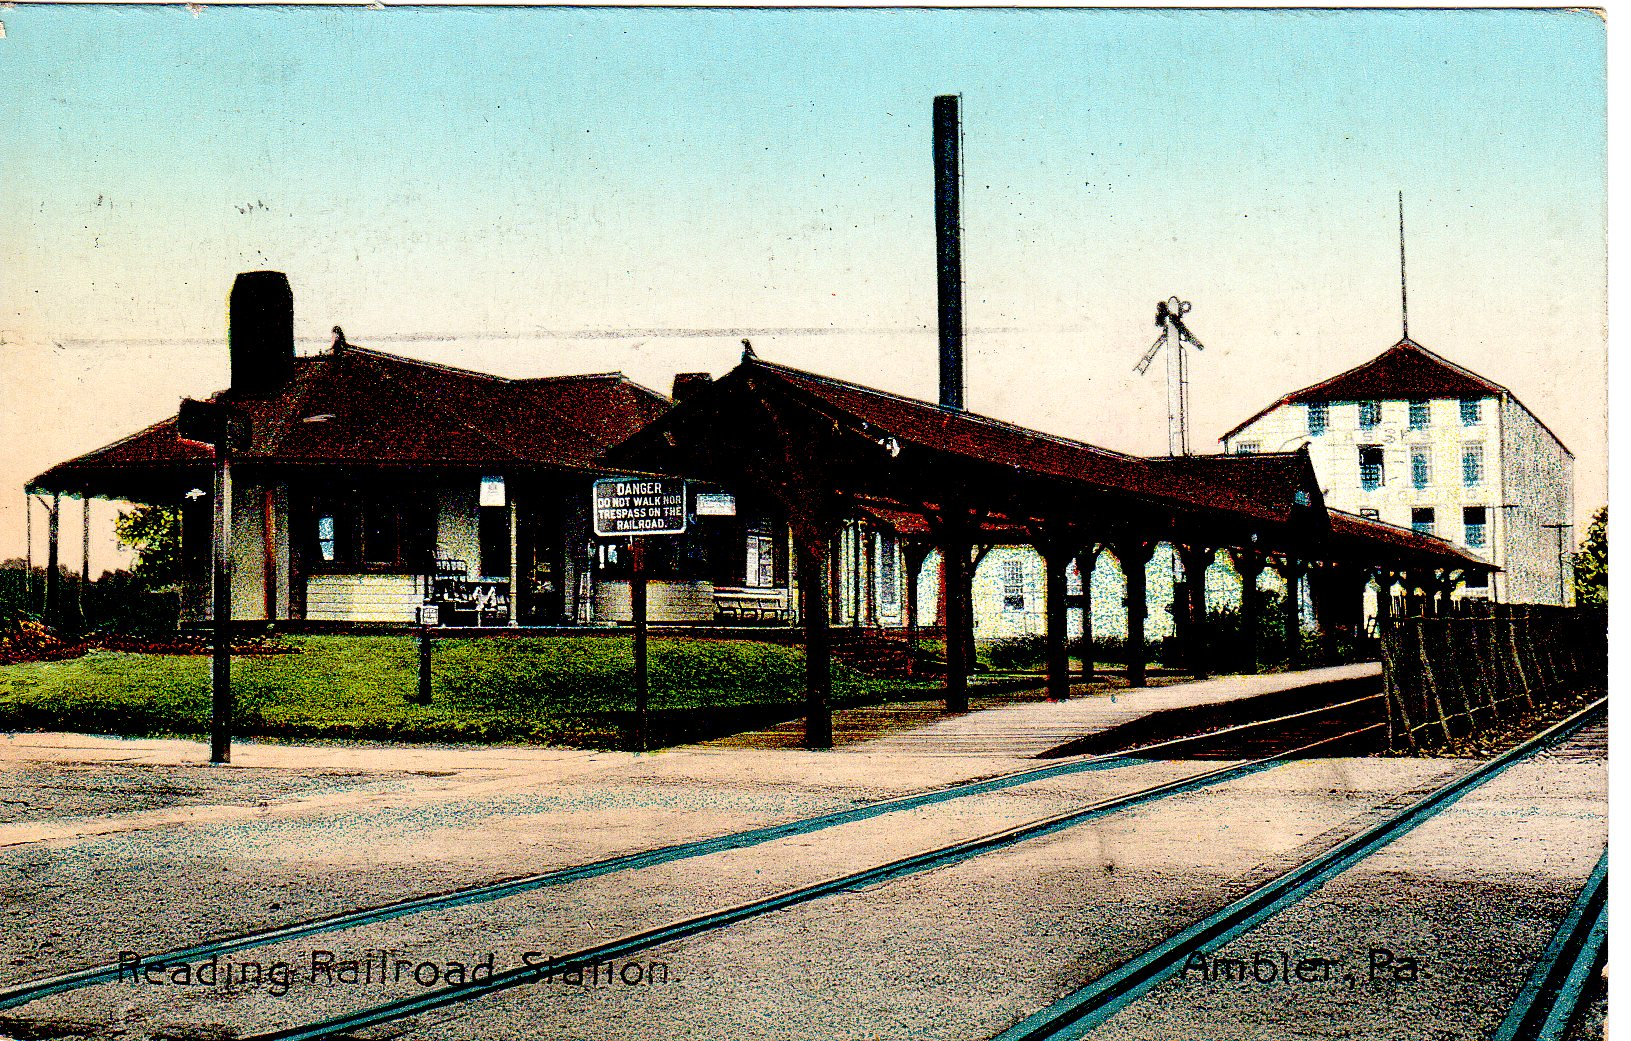 Post Card Collection (E Simon)_2682_07_Reading RR Station, Ambler, Pa_1912